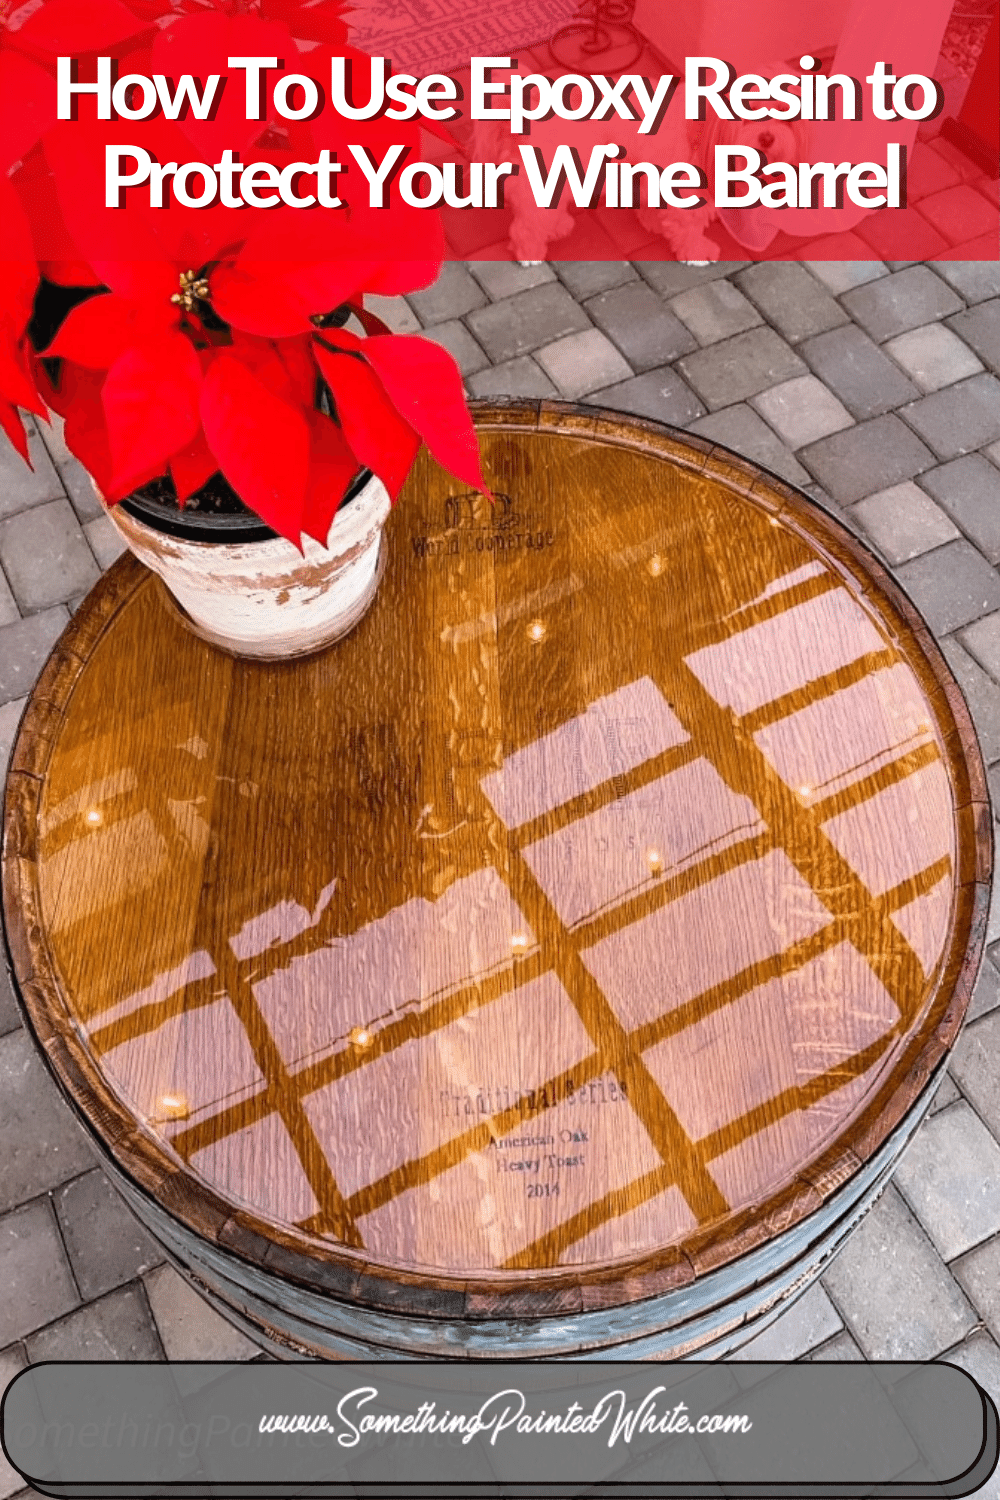 Photo showing wine barrel after using Epoxy Resin to protect the top of it.